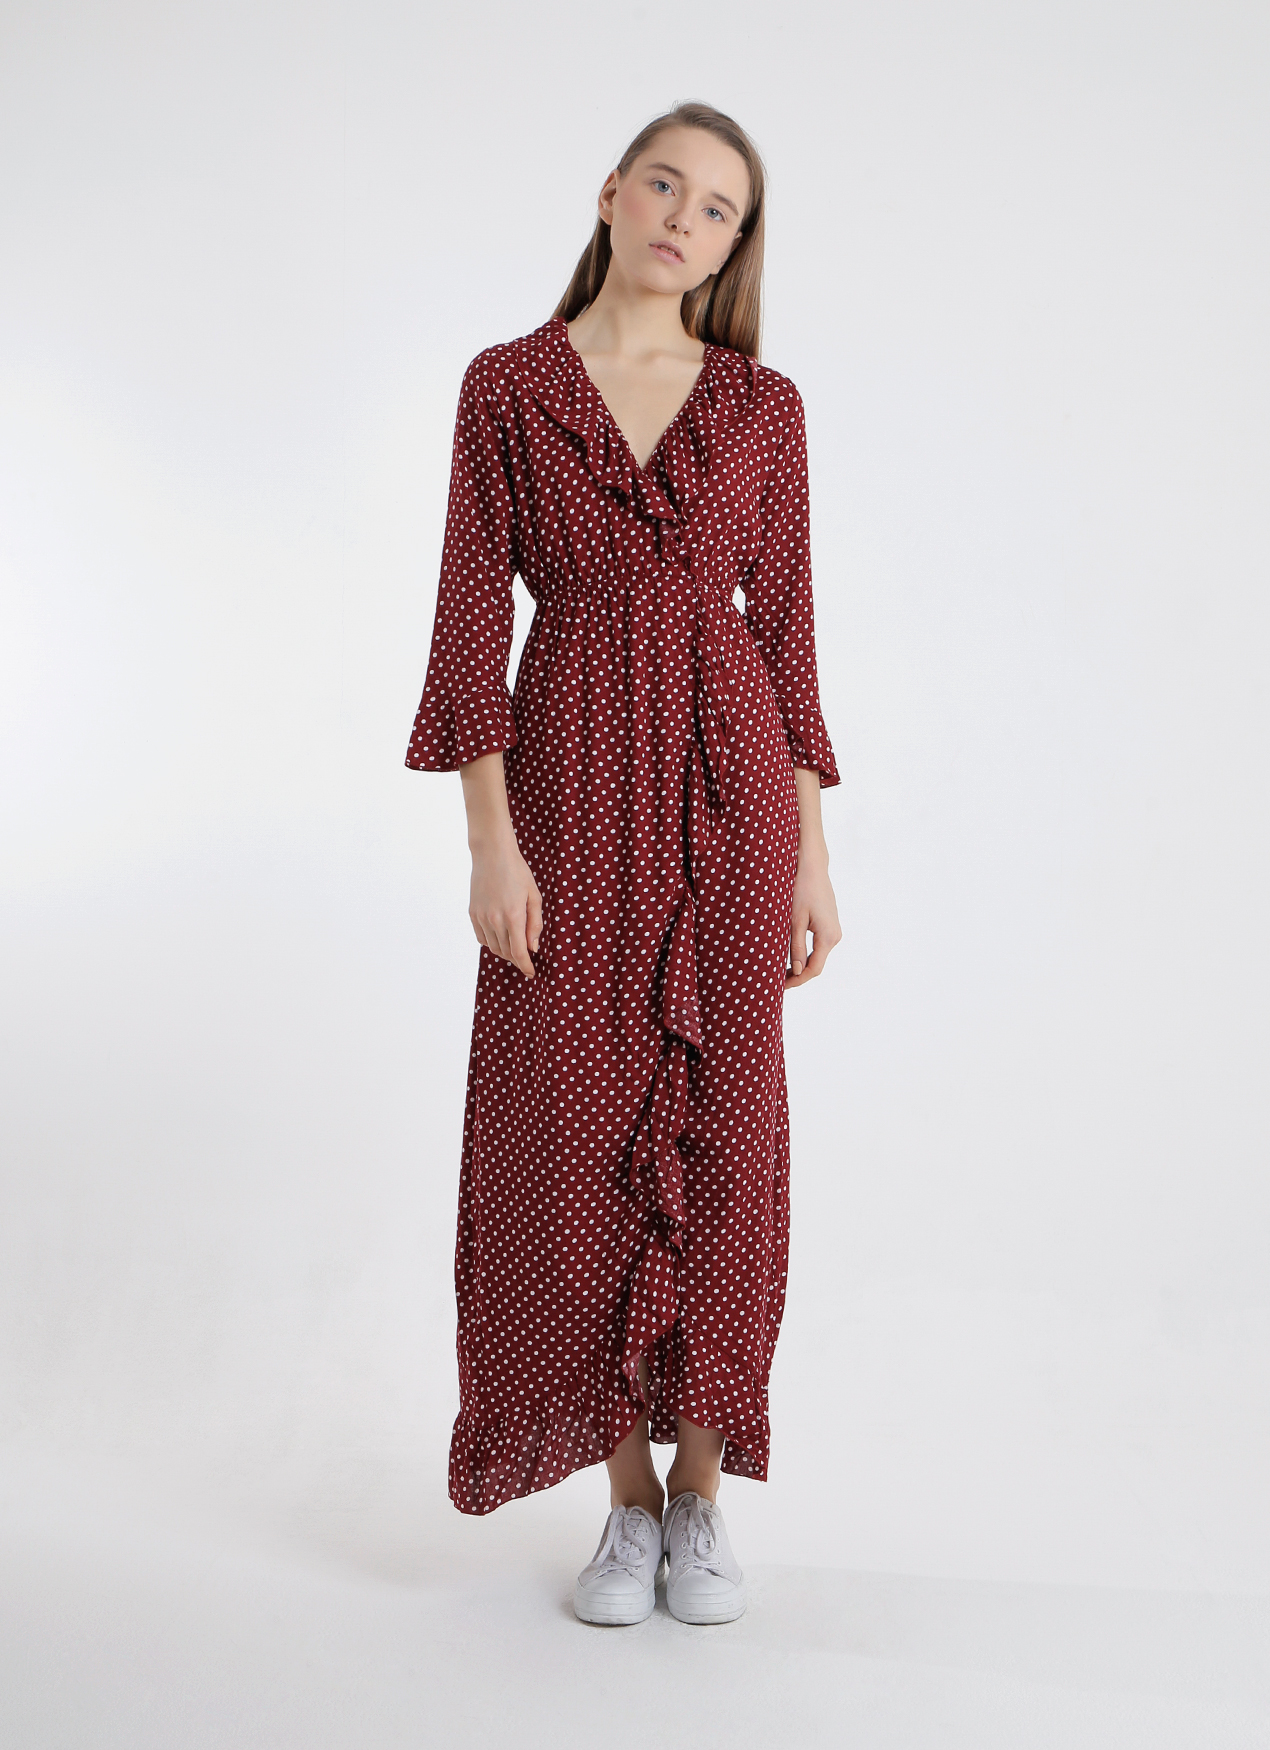 a64ac97e36d3 Buy Original Vintage Treasure Red Dolce Maxi Dress at Indonesia ...